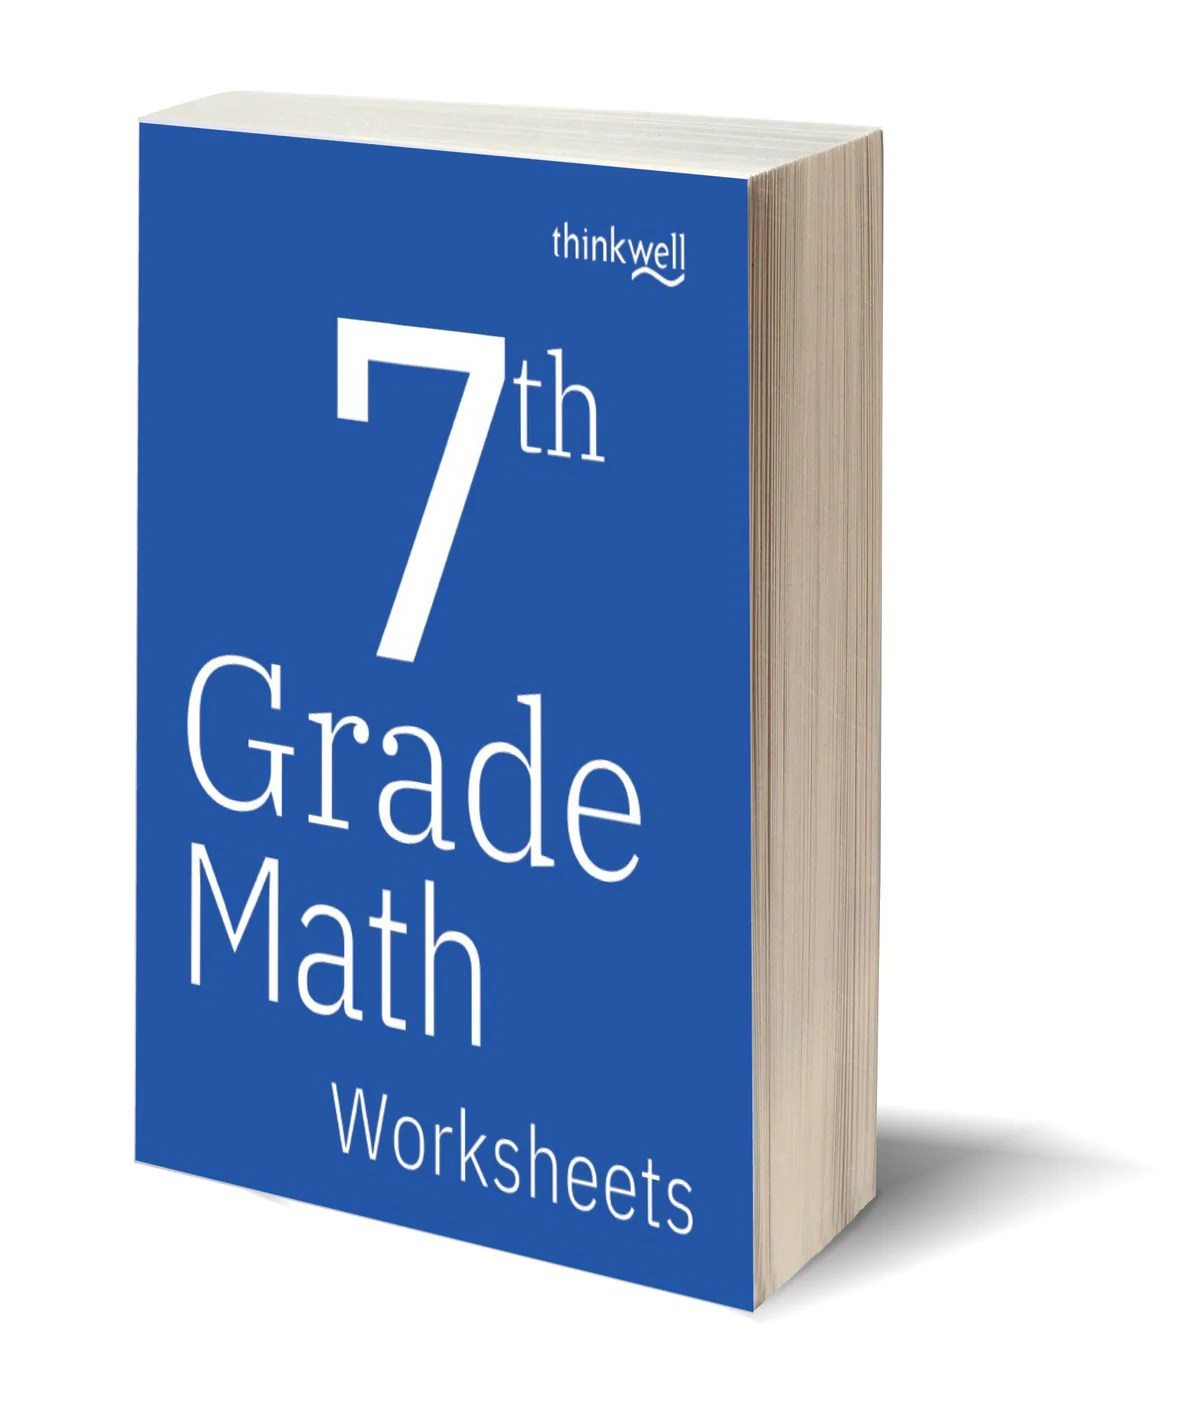 7th Grade Math Worksheets and Answer Keys   Thinkwell   Thinkwell Homeschool [ 1416 x 1200 Pixel ]